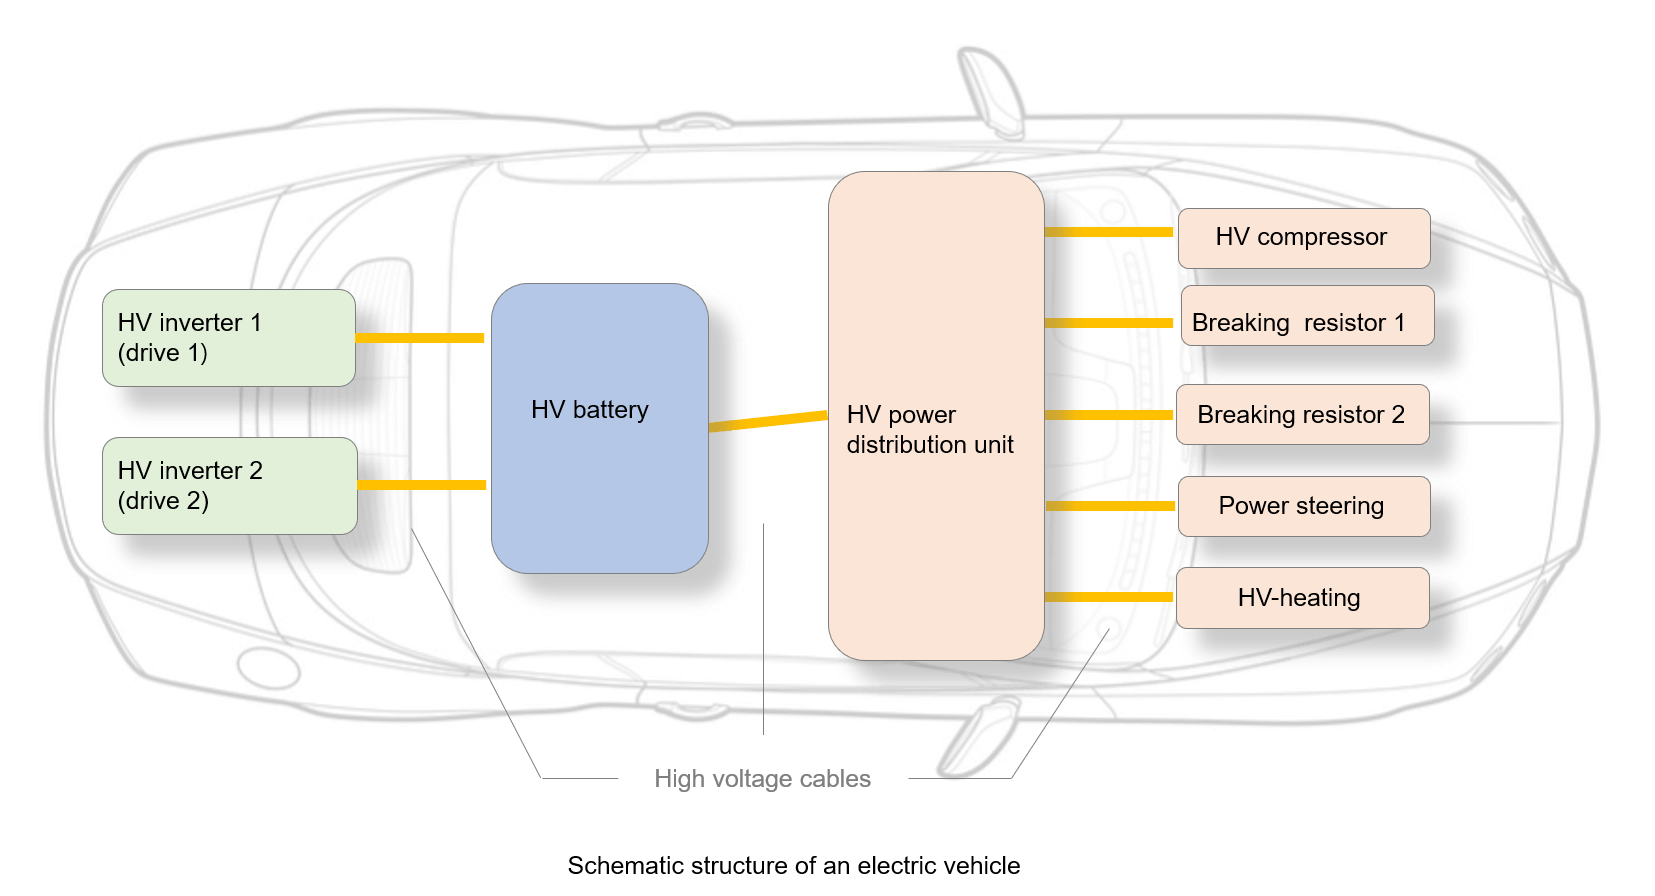 Schematic structure of an electric vehicle